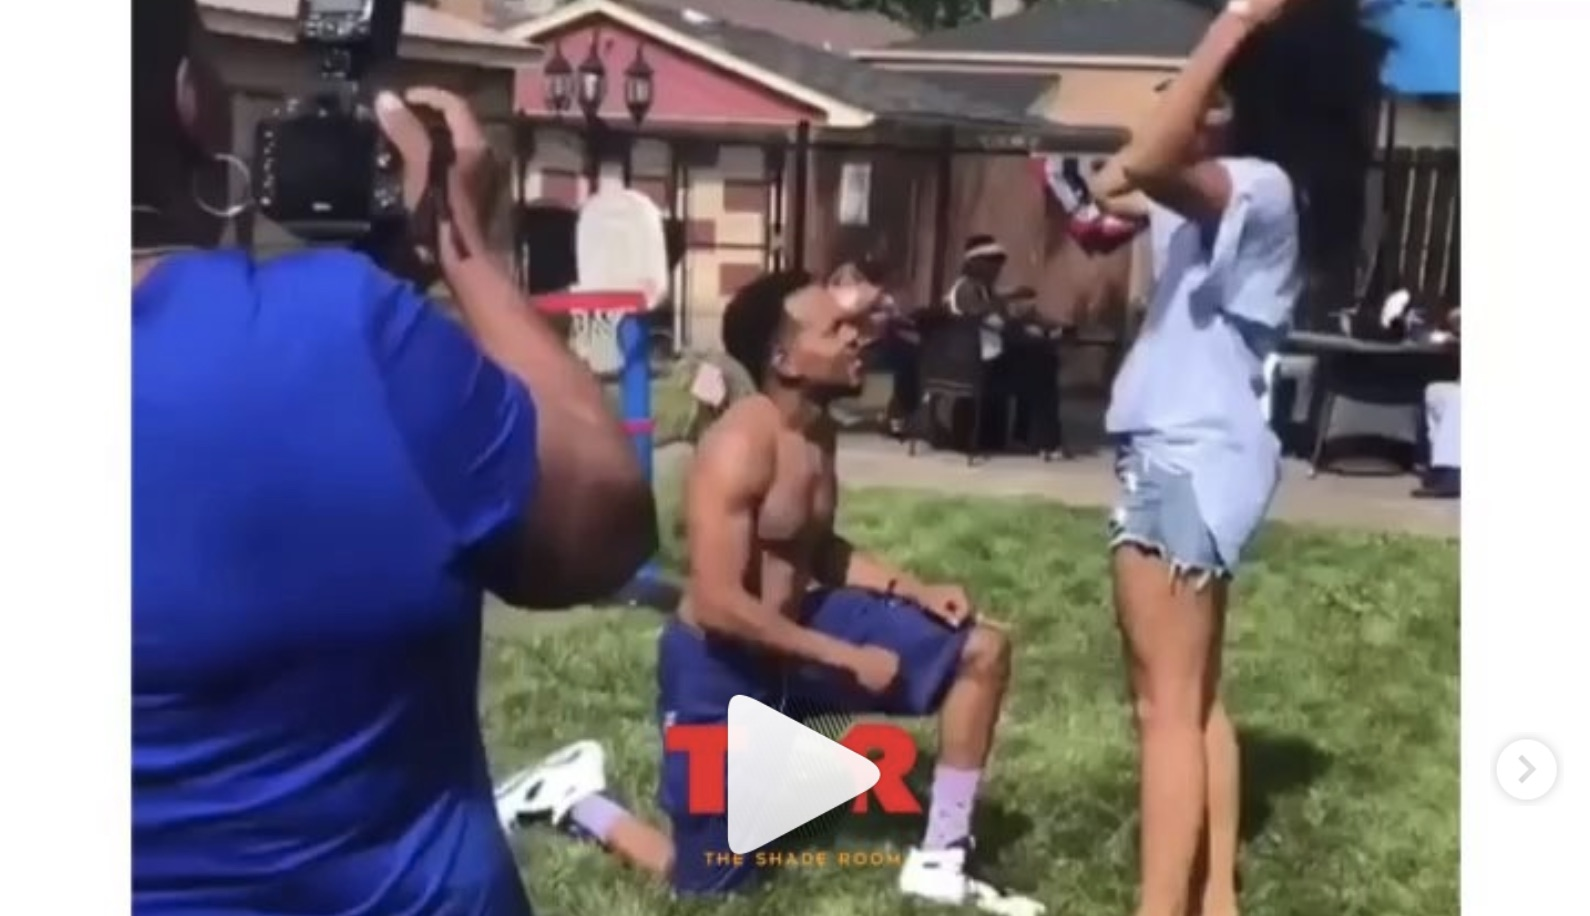 Chance the Rapper got engaged at a July 4th party — and it was all caught on camera